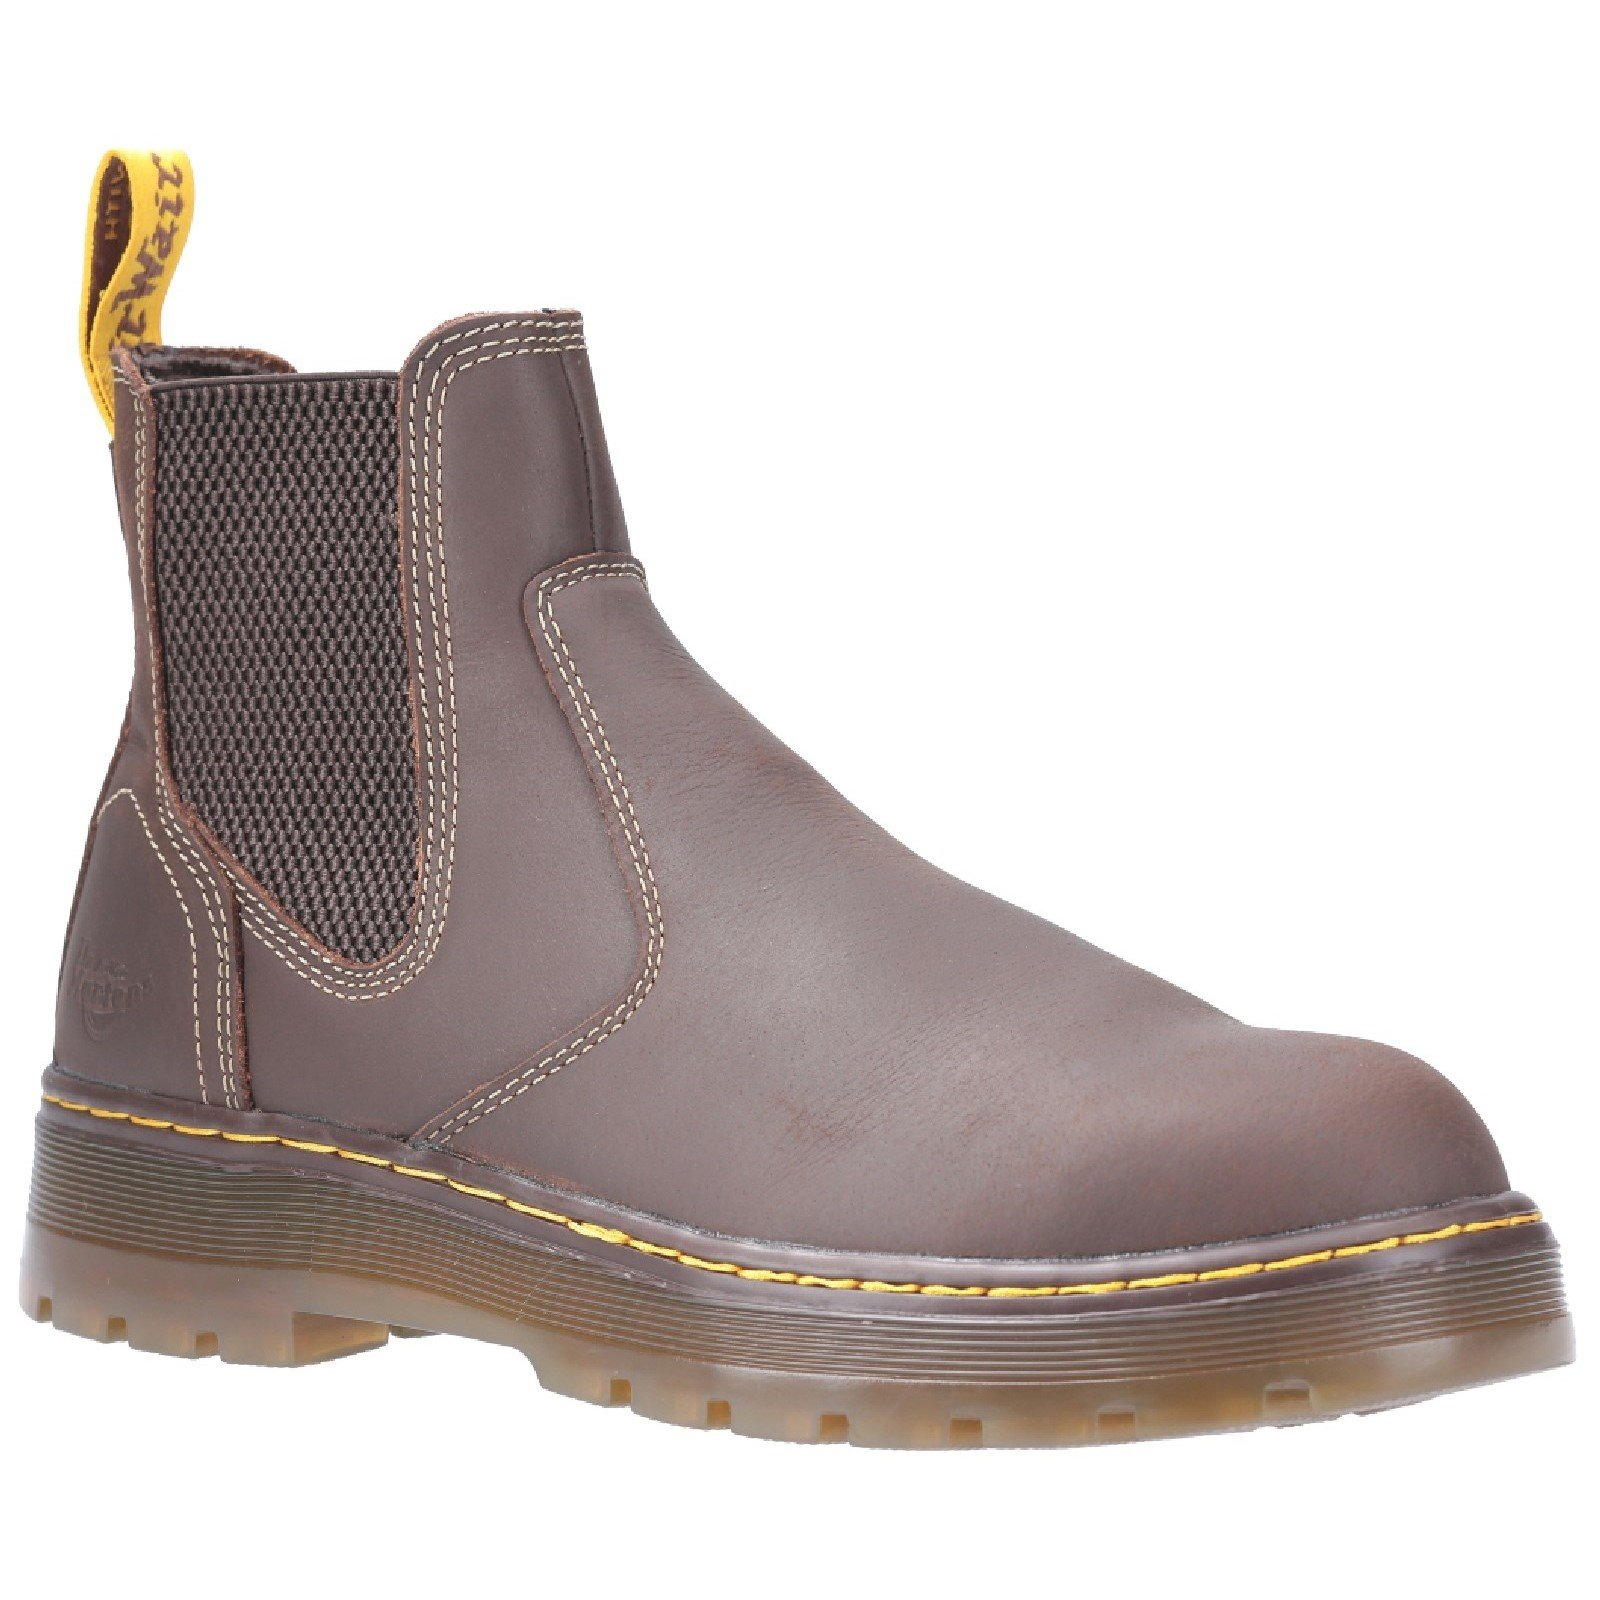 Dr Martens Unisex Eaves SB Elasticated Safety Boot Brown 29519 - Brown 10